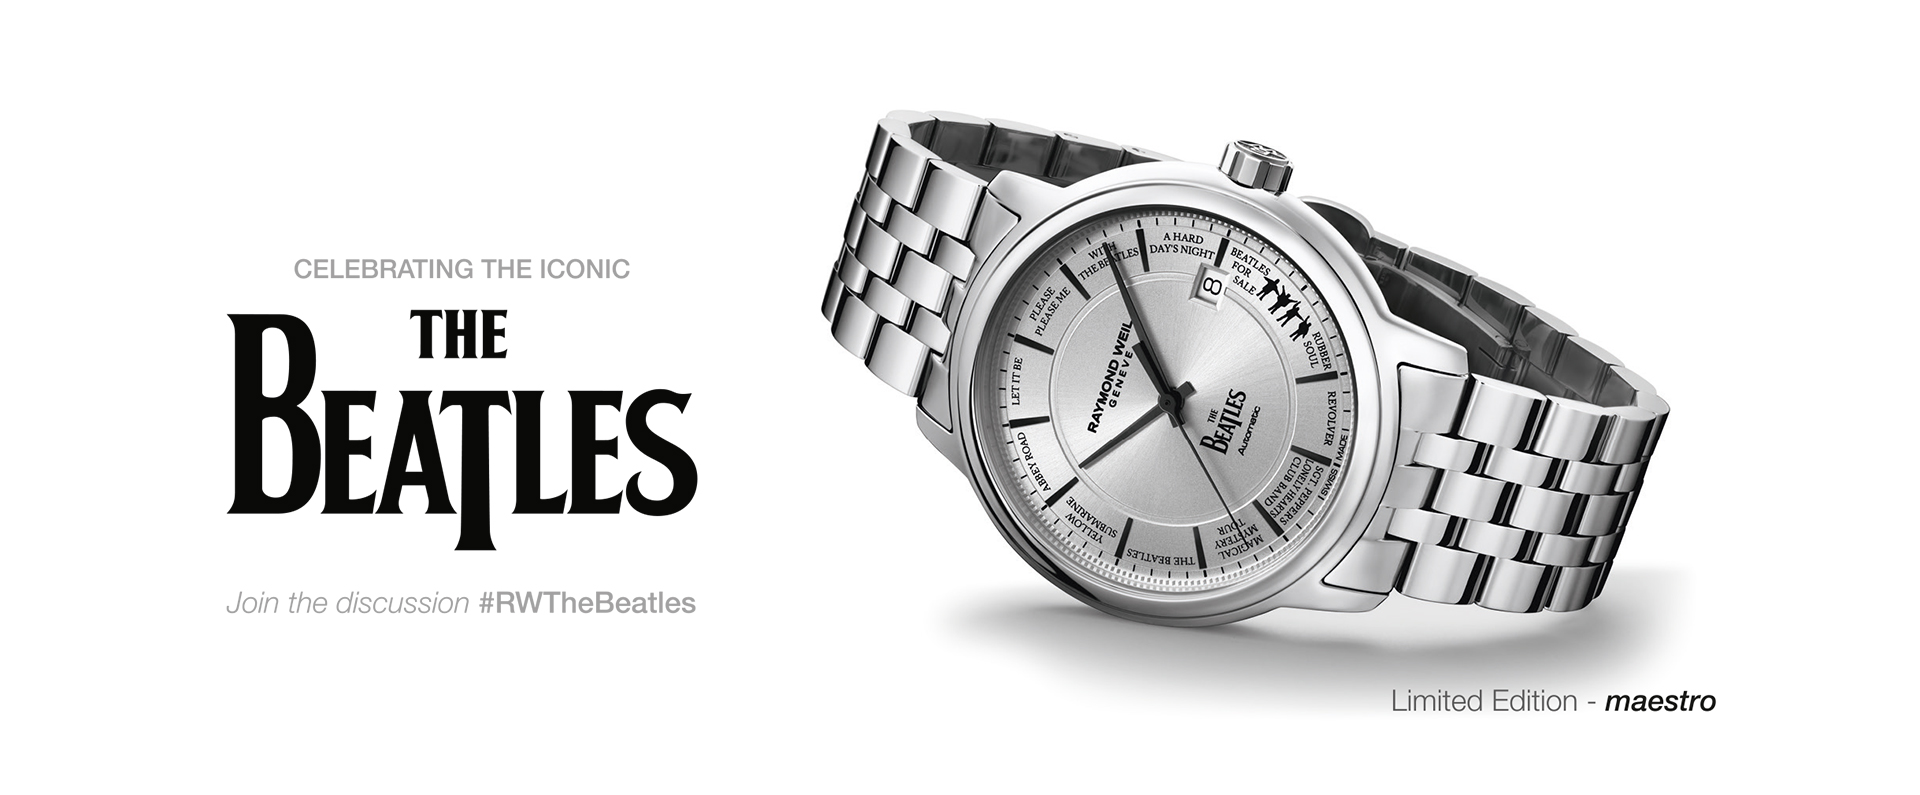 The Beatles Limited Edition Maestro Watch